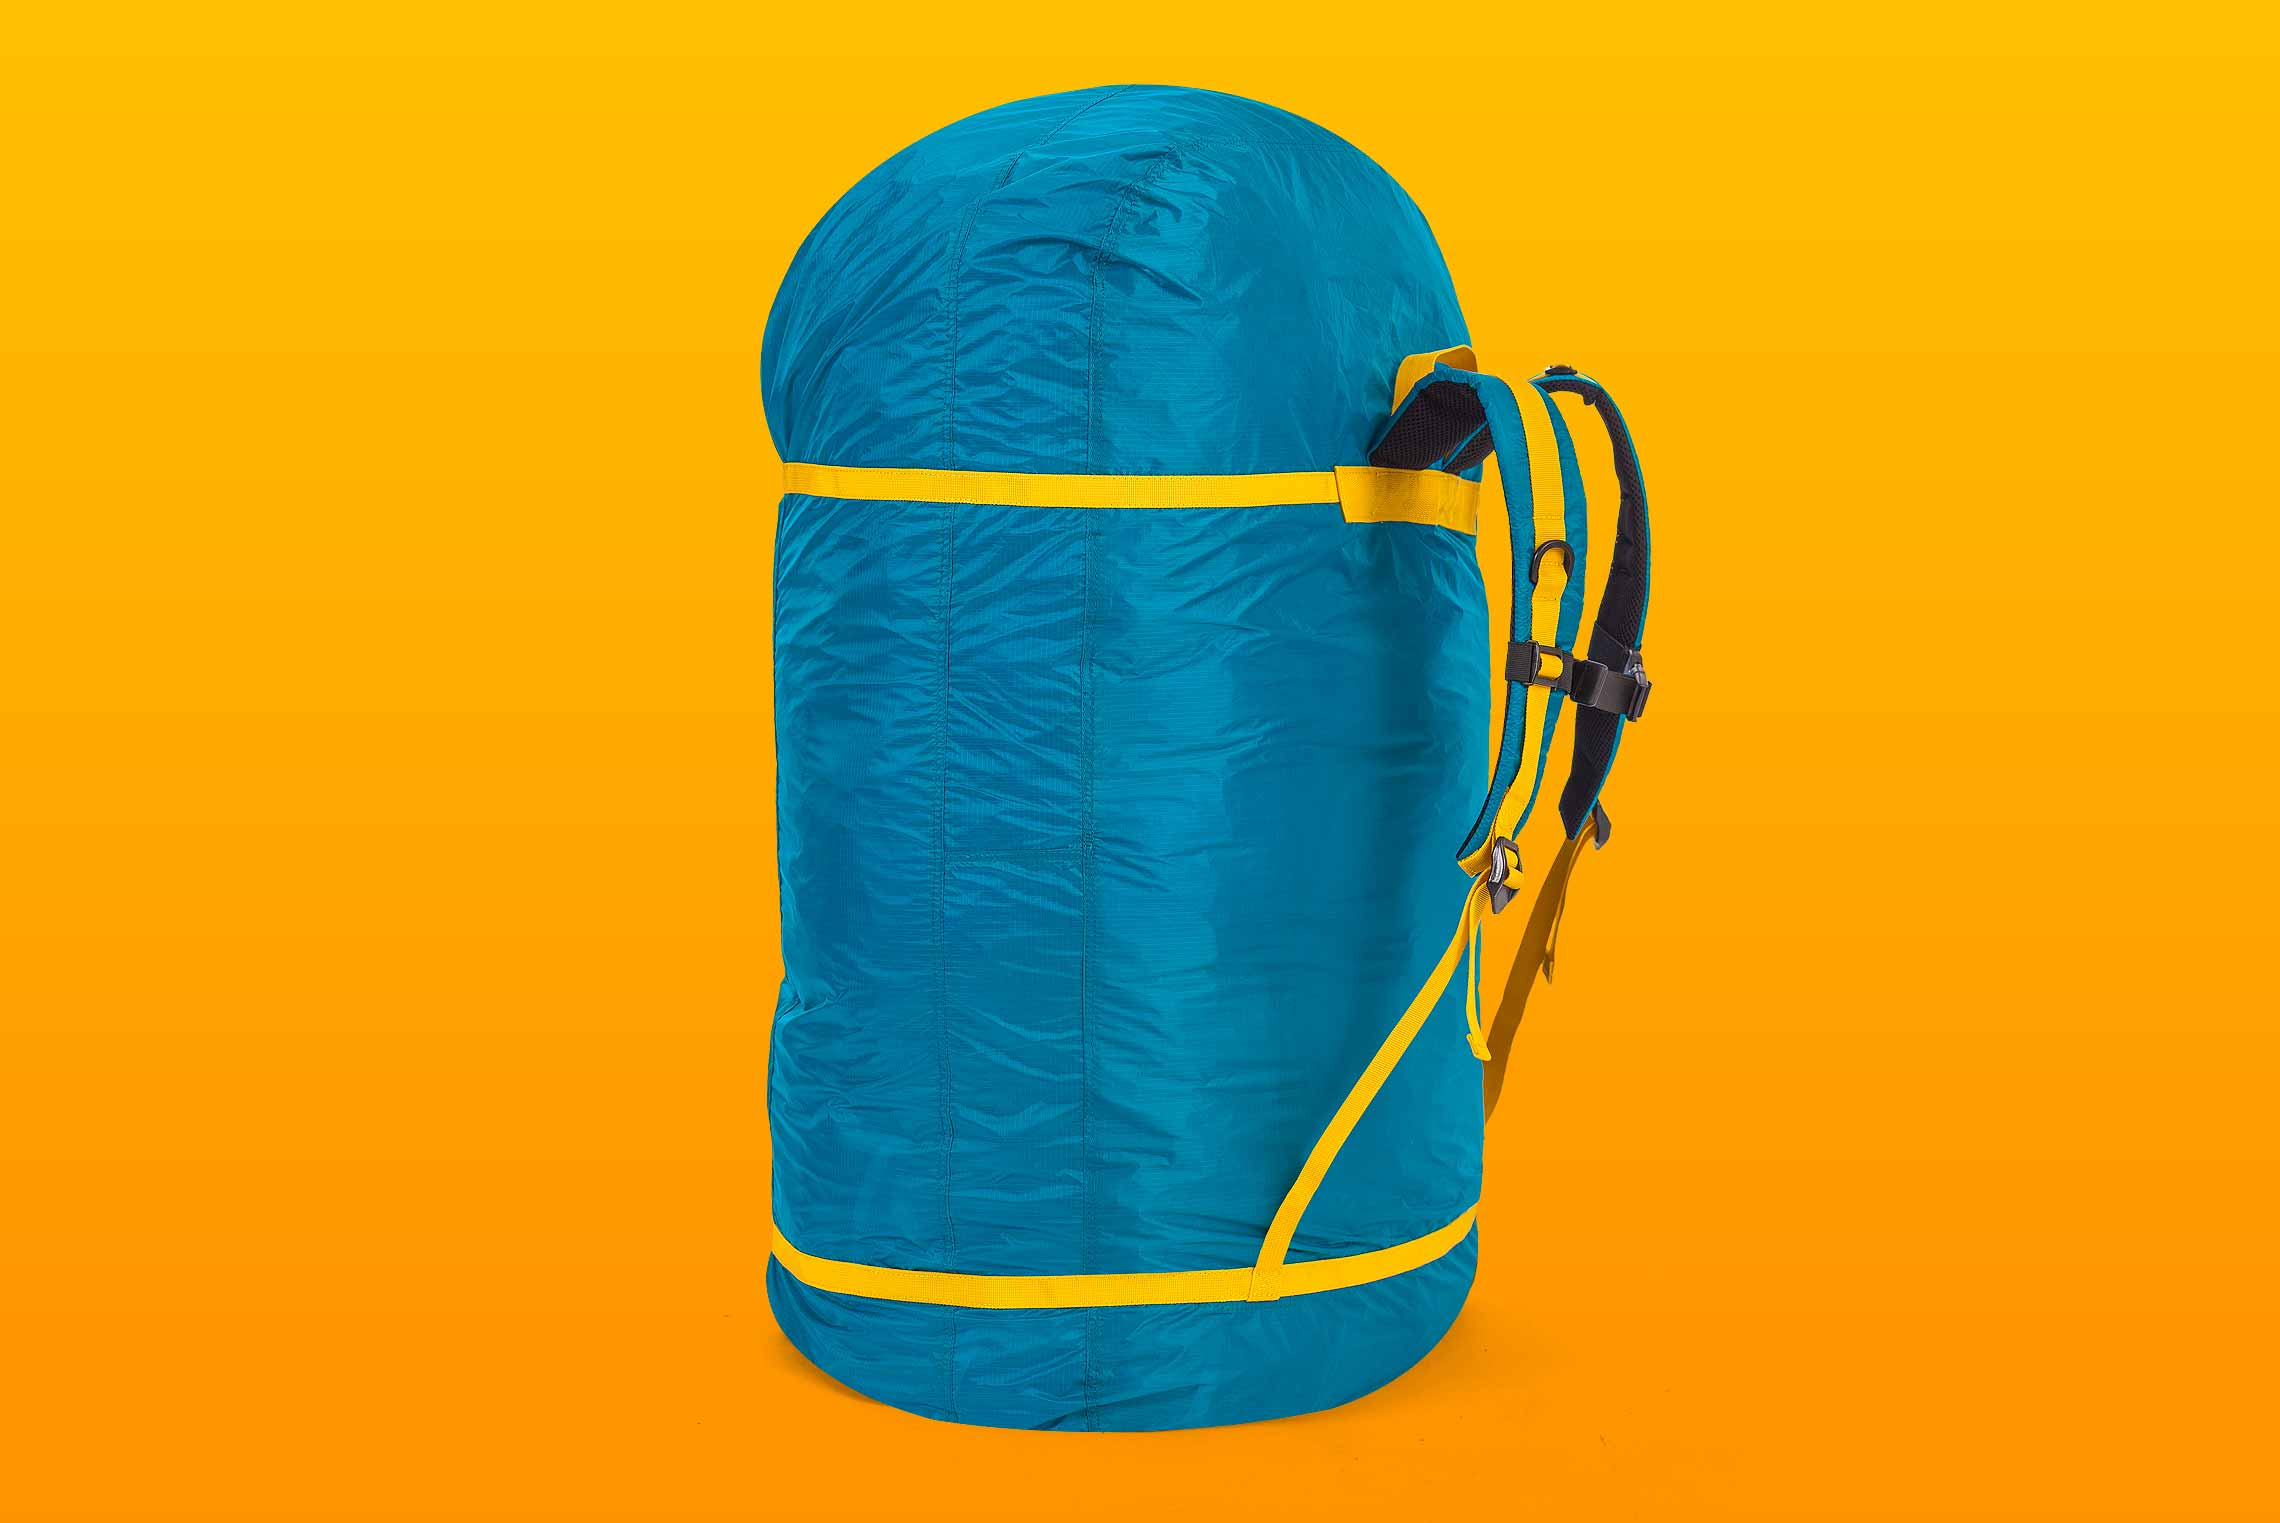 Icaro Fast Packing Bag